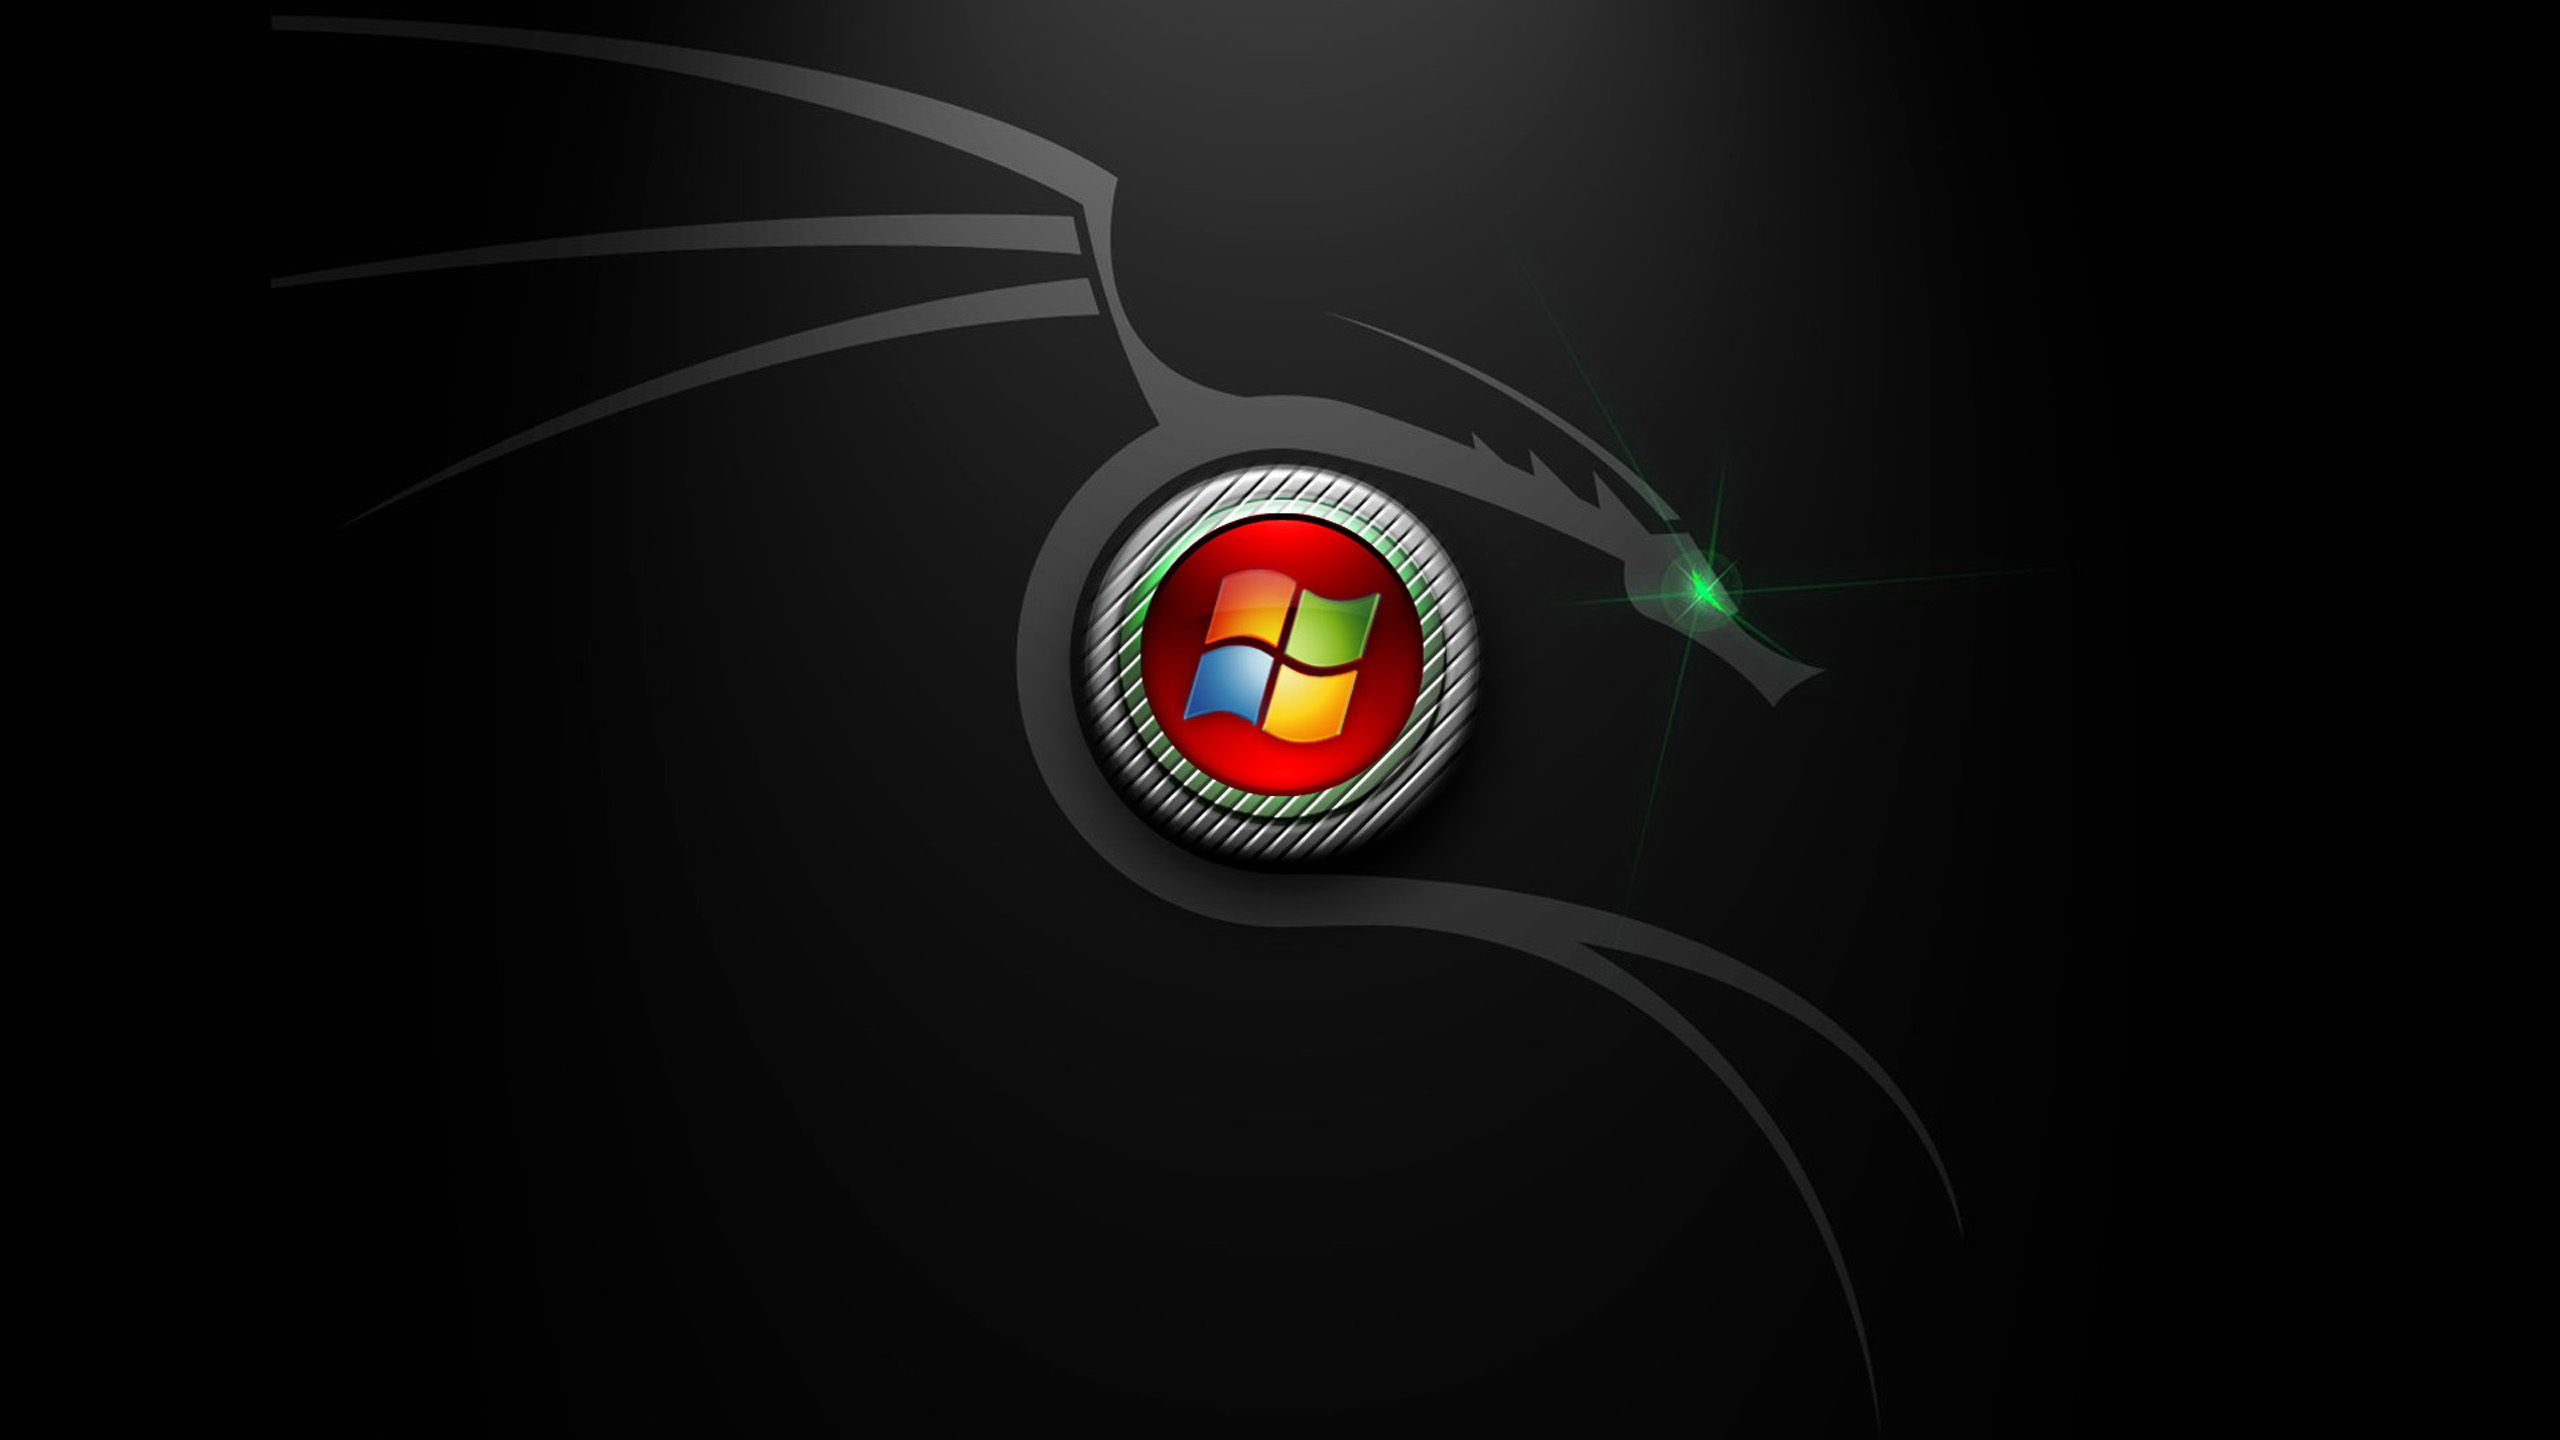 With Windows Logo